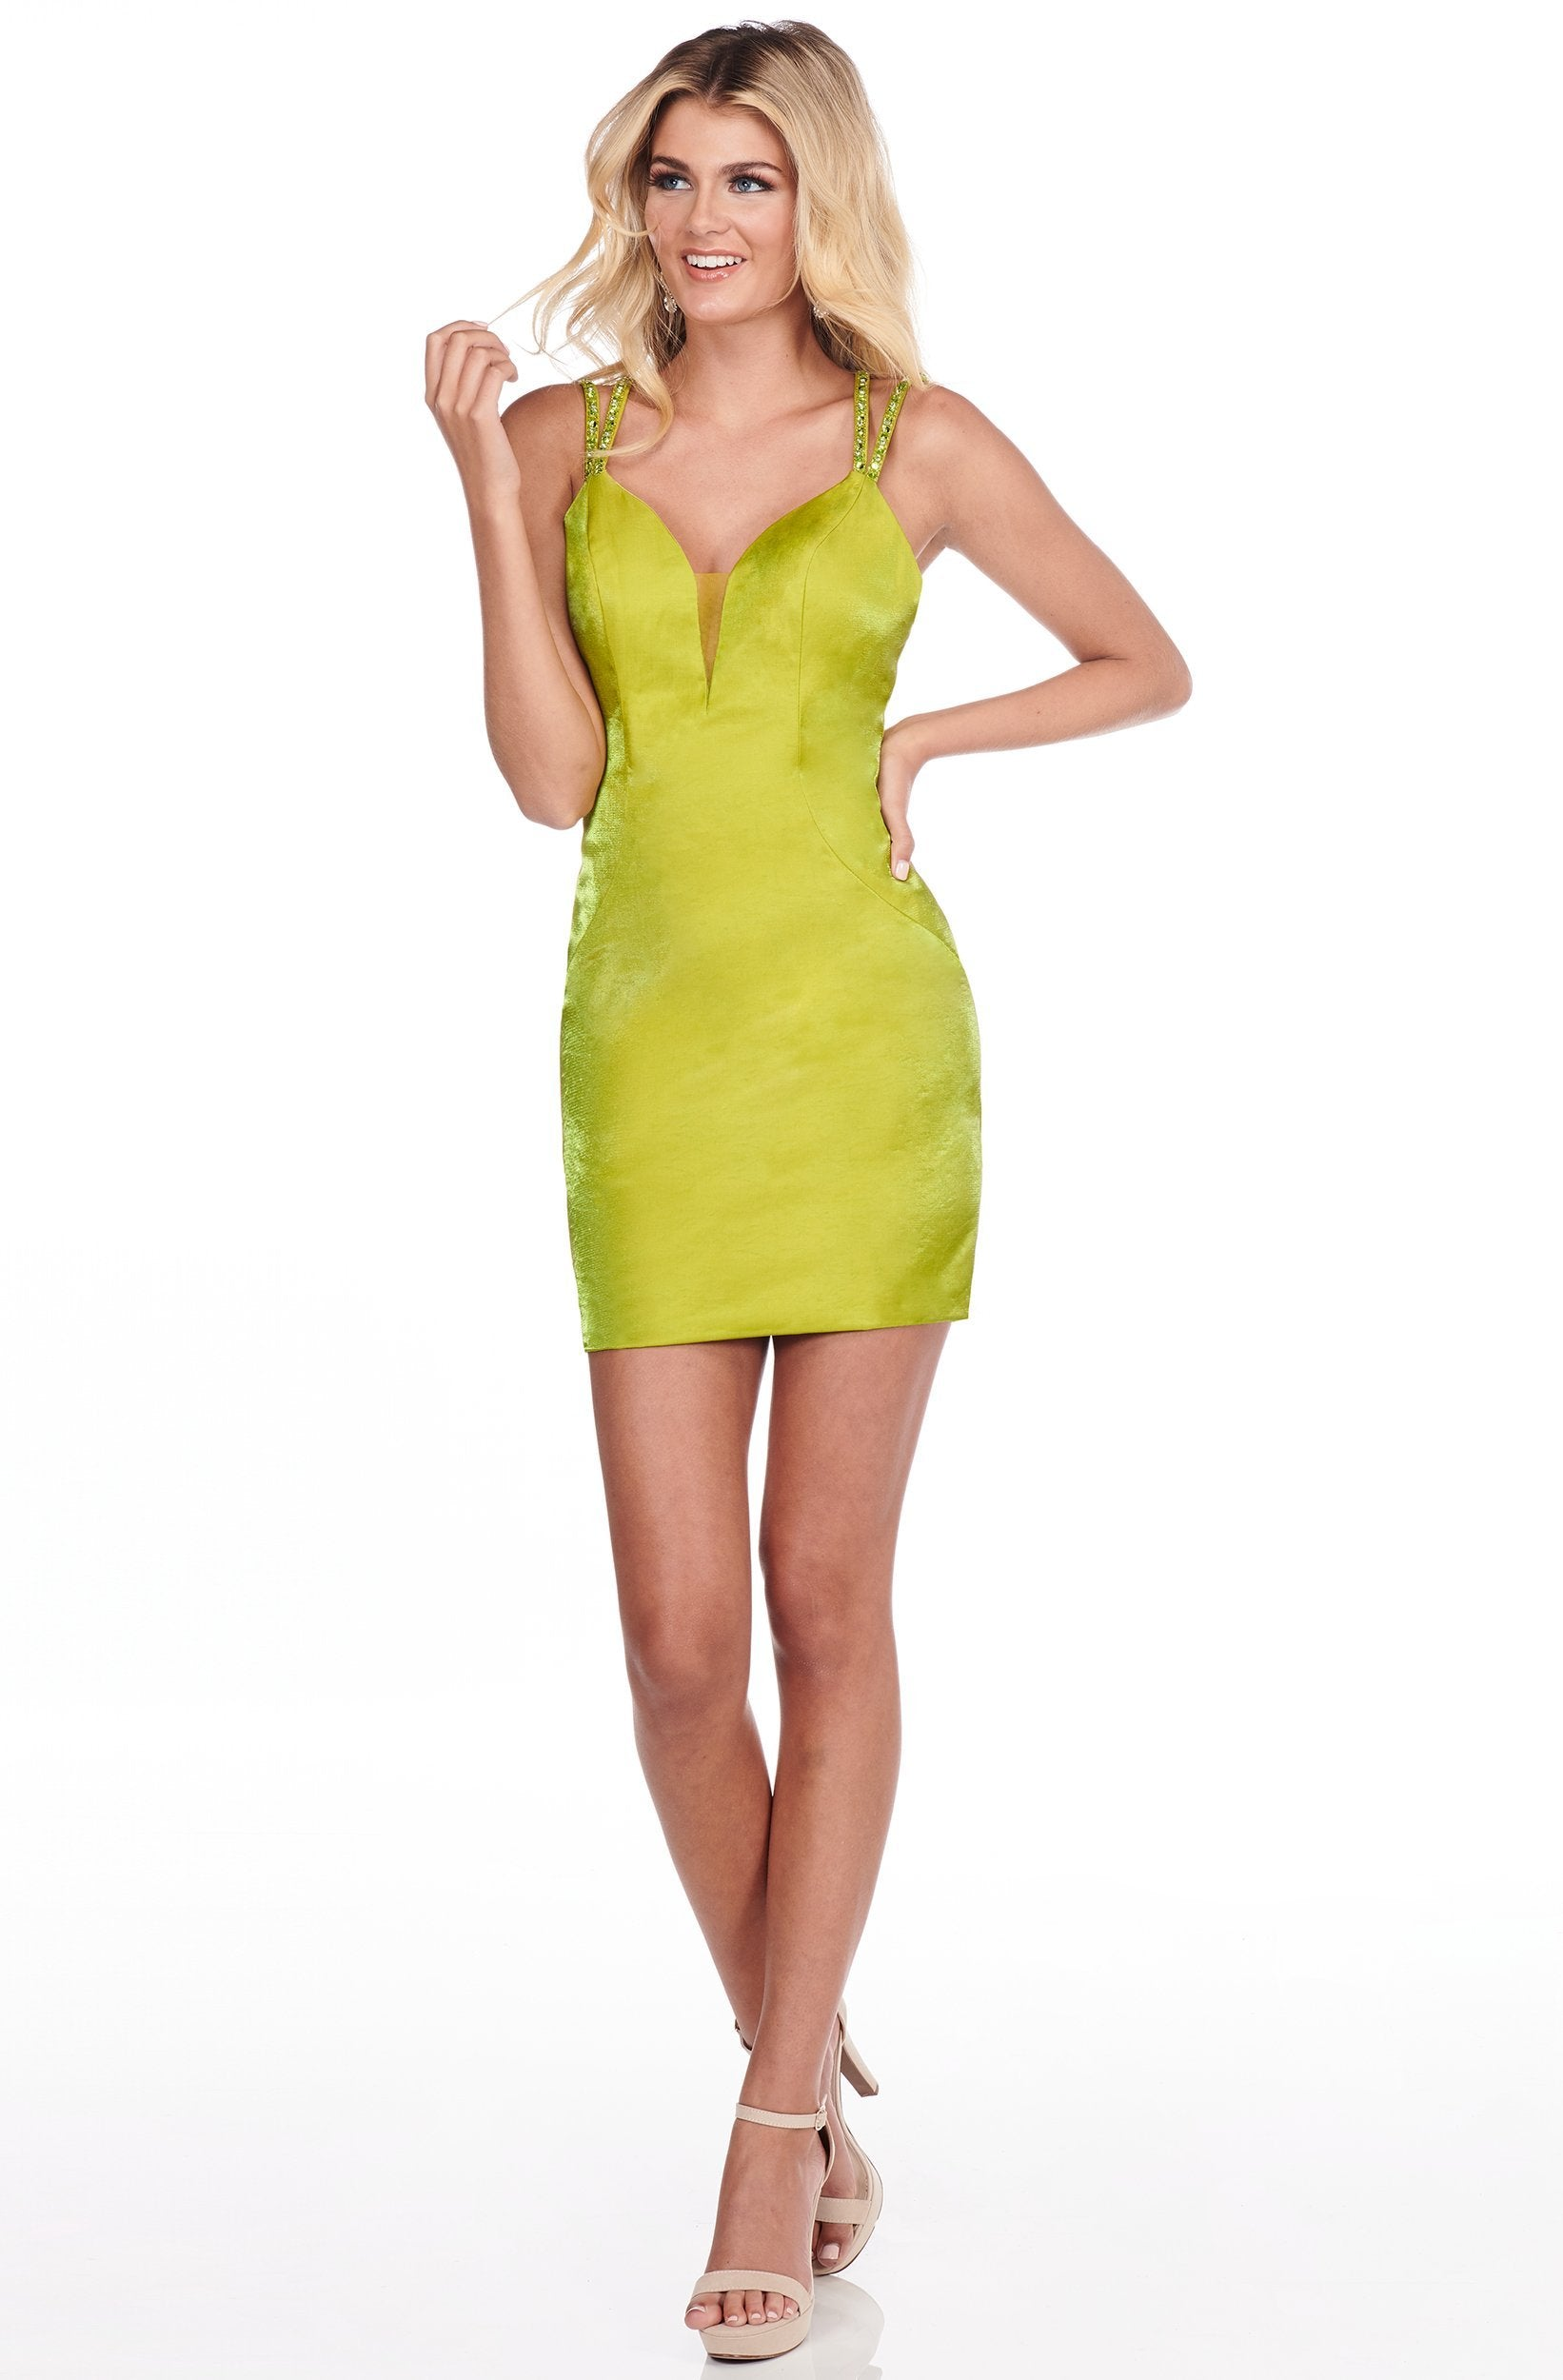 Rachel Allan Shorts - 4067 Strappy Plunging V-Neck Short Dress In Green